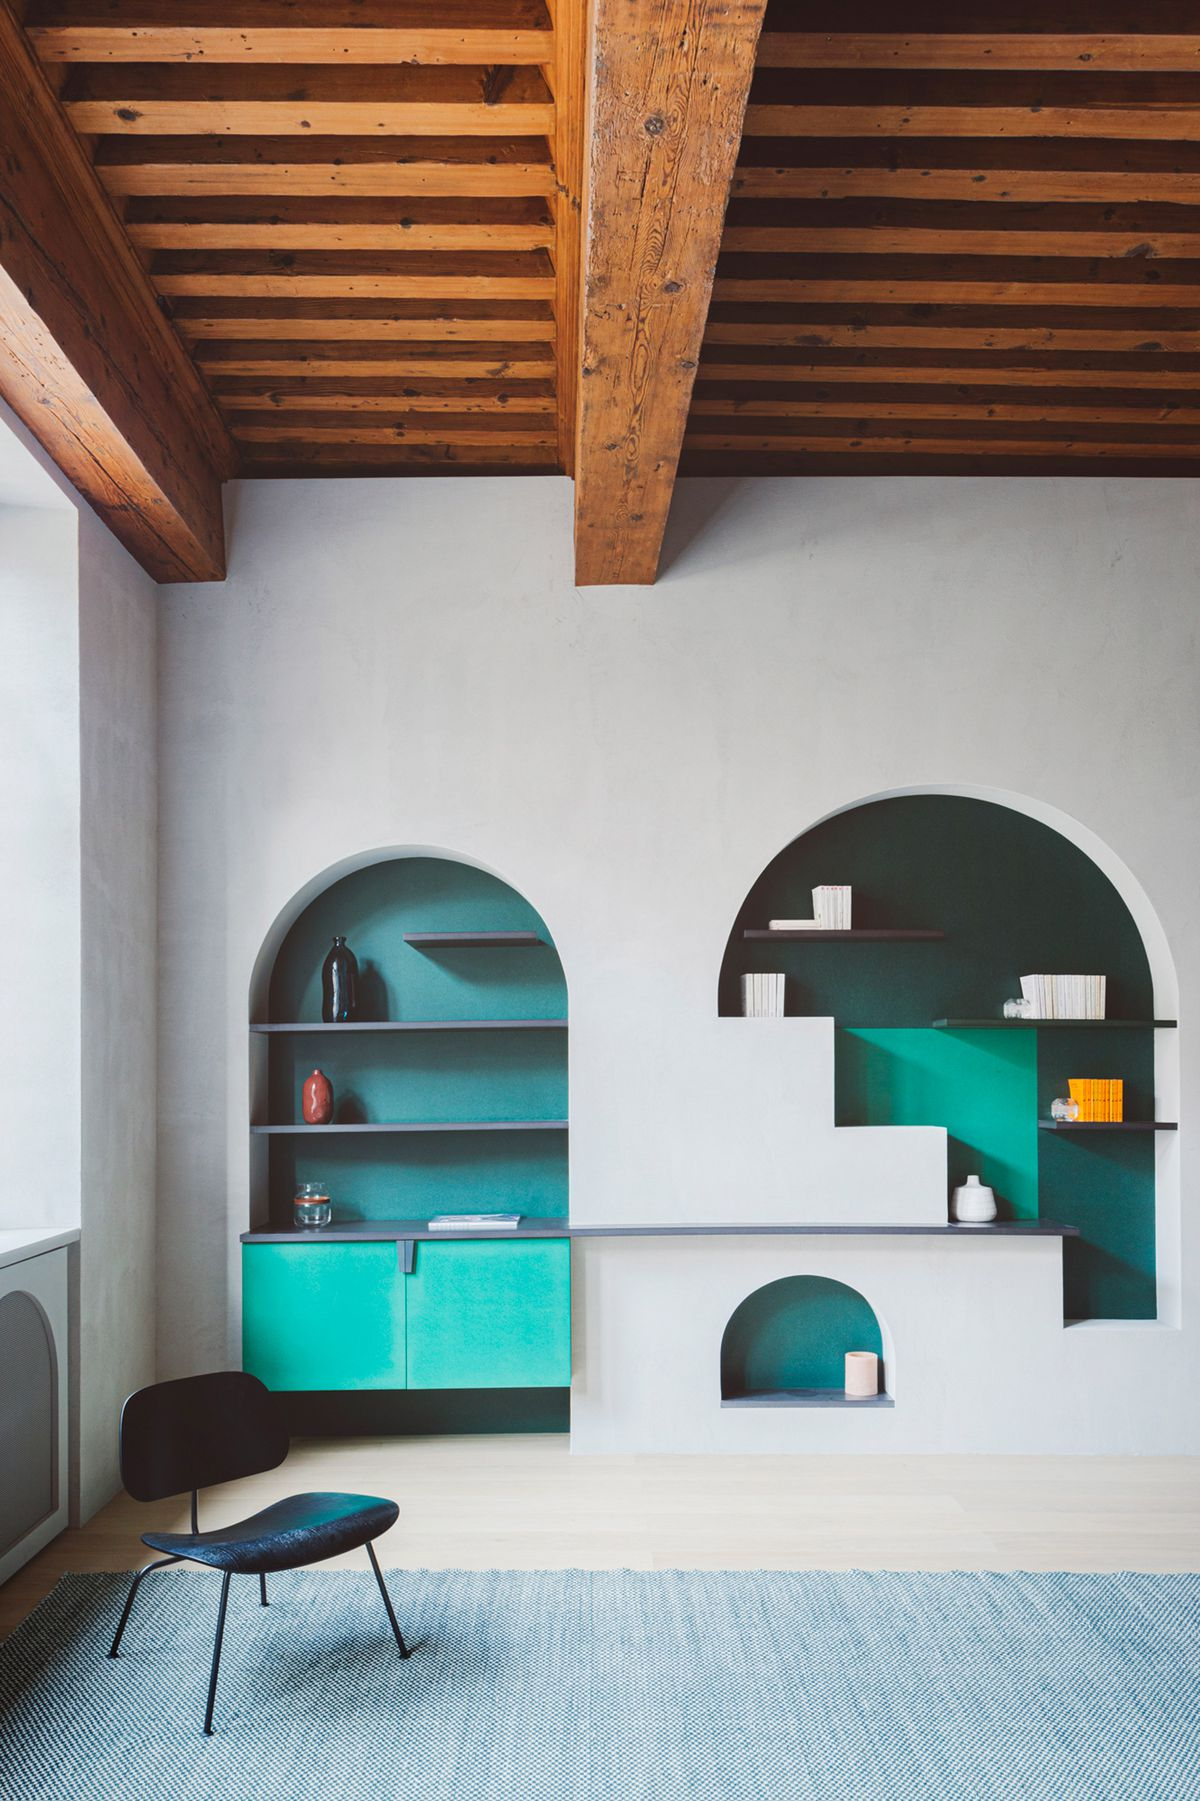 Arched shelving built into wall.